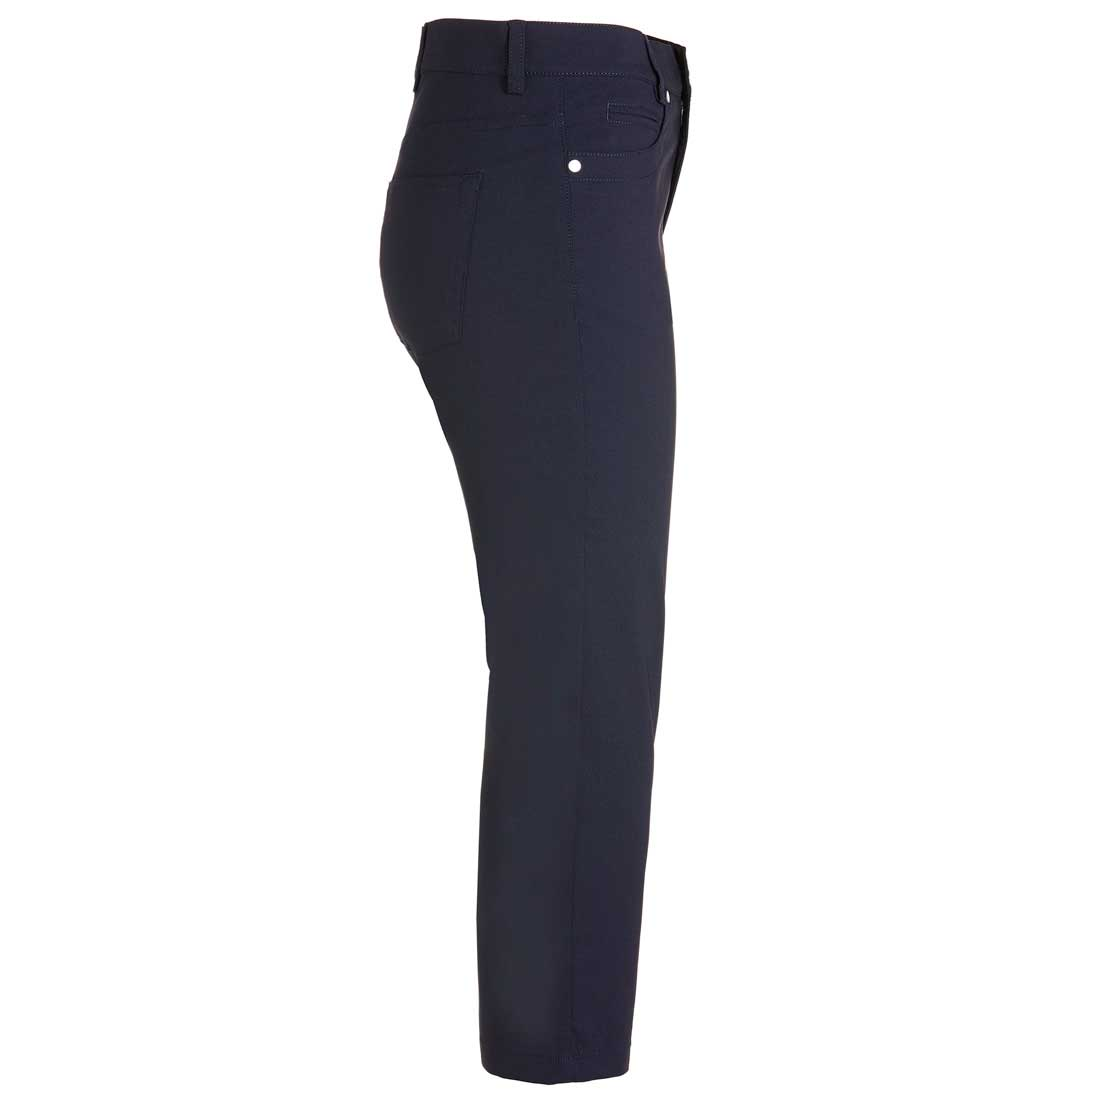 Damen Techno Stretch Caprihose mit Moisture Management und Sun Protection